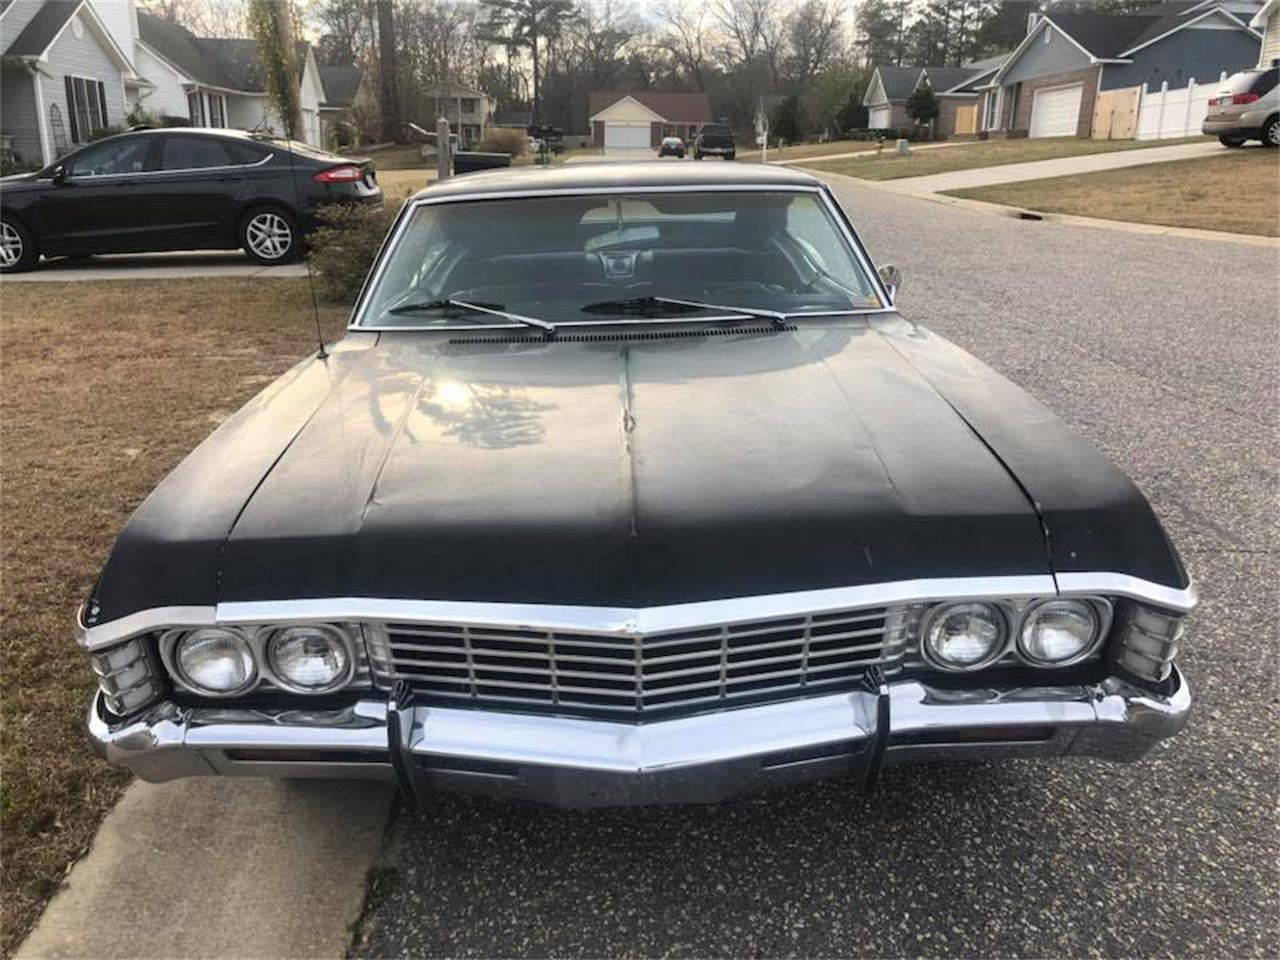 1967 Chevrolet Impala for sale in West Pittston, PA